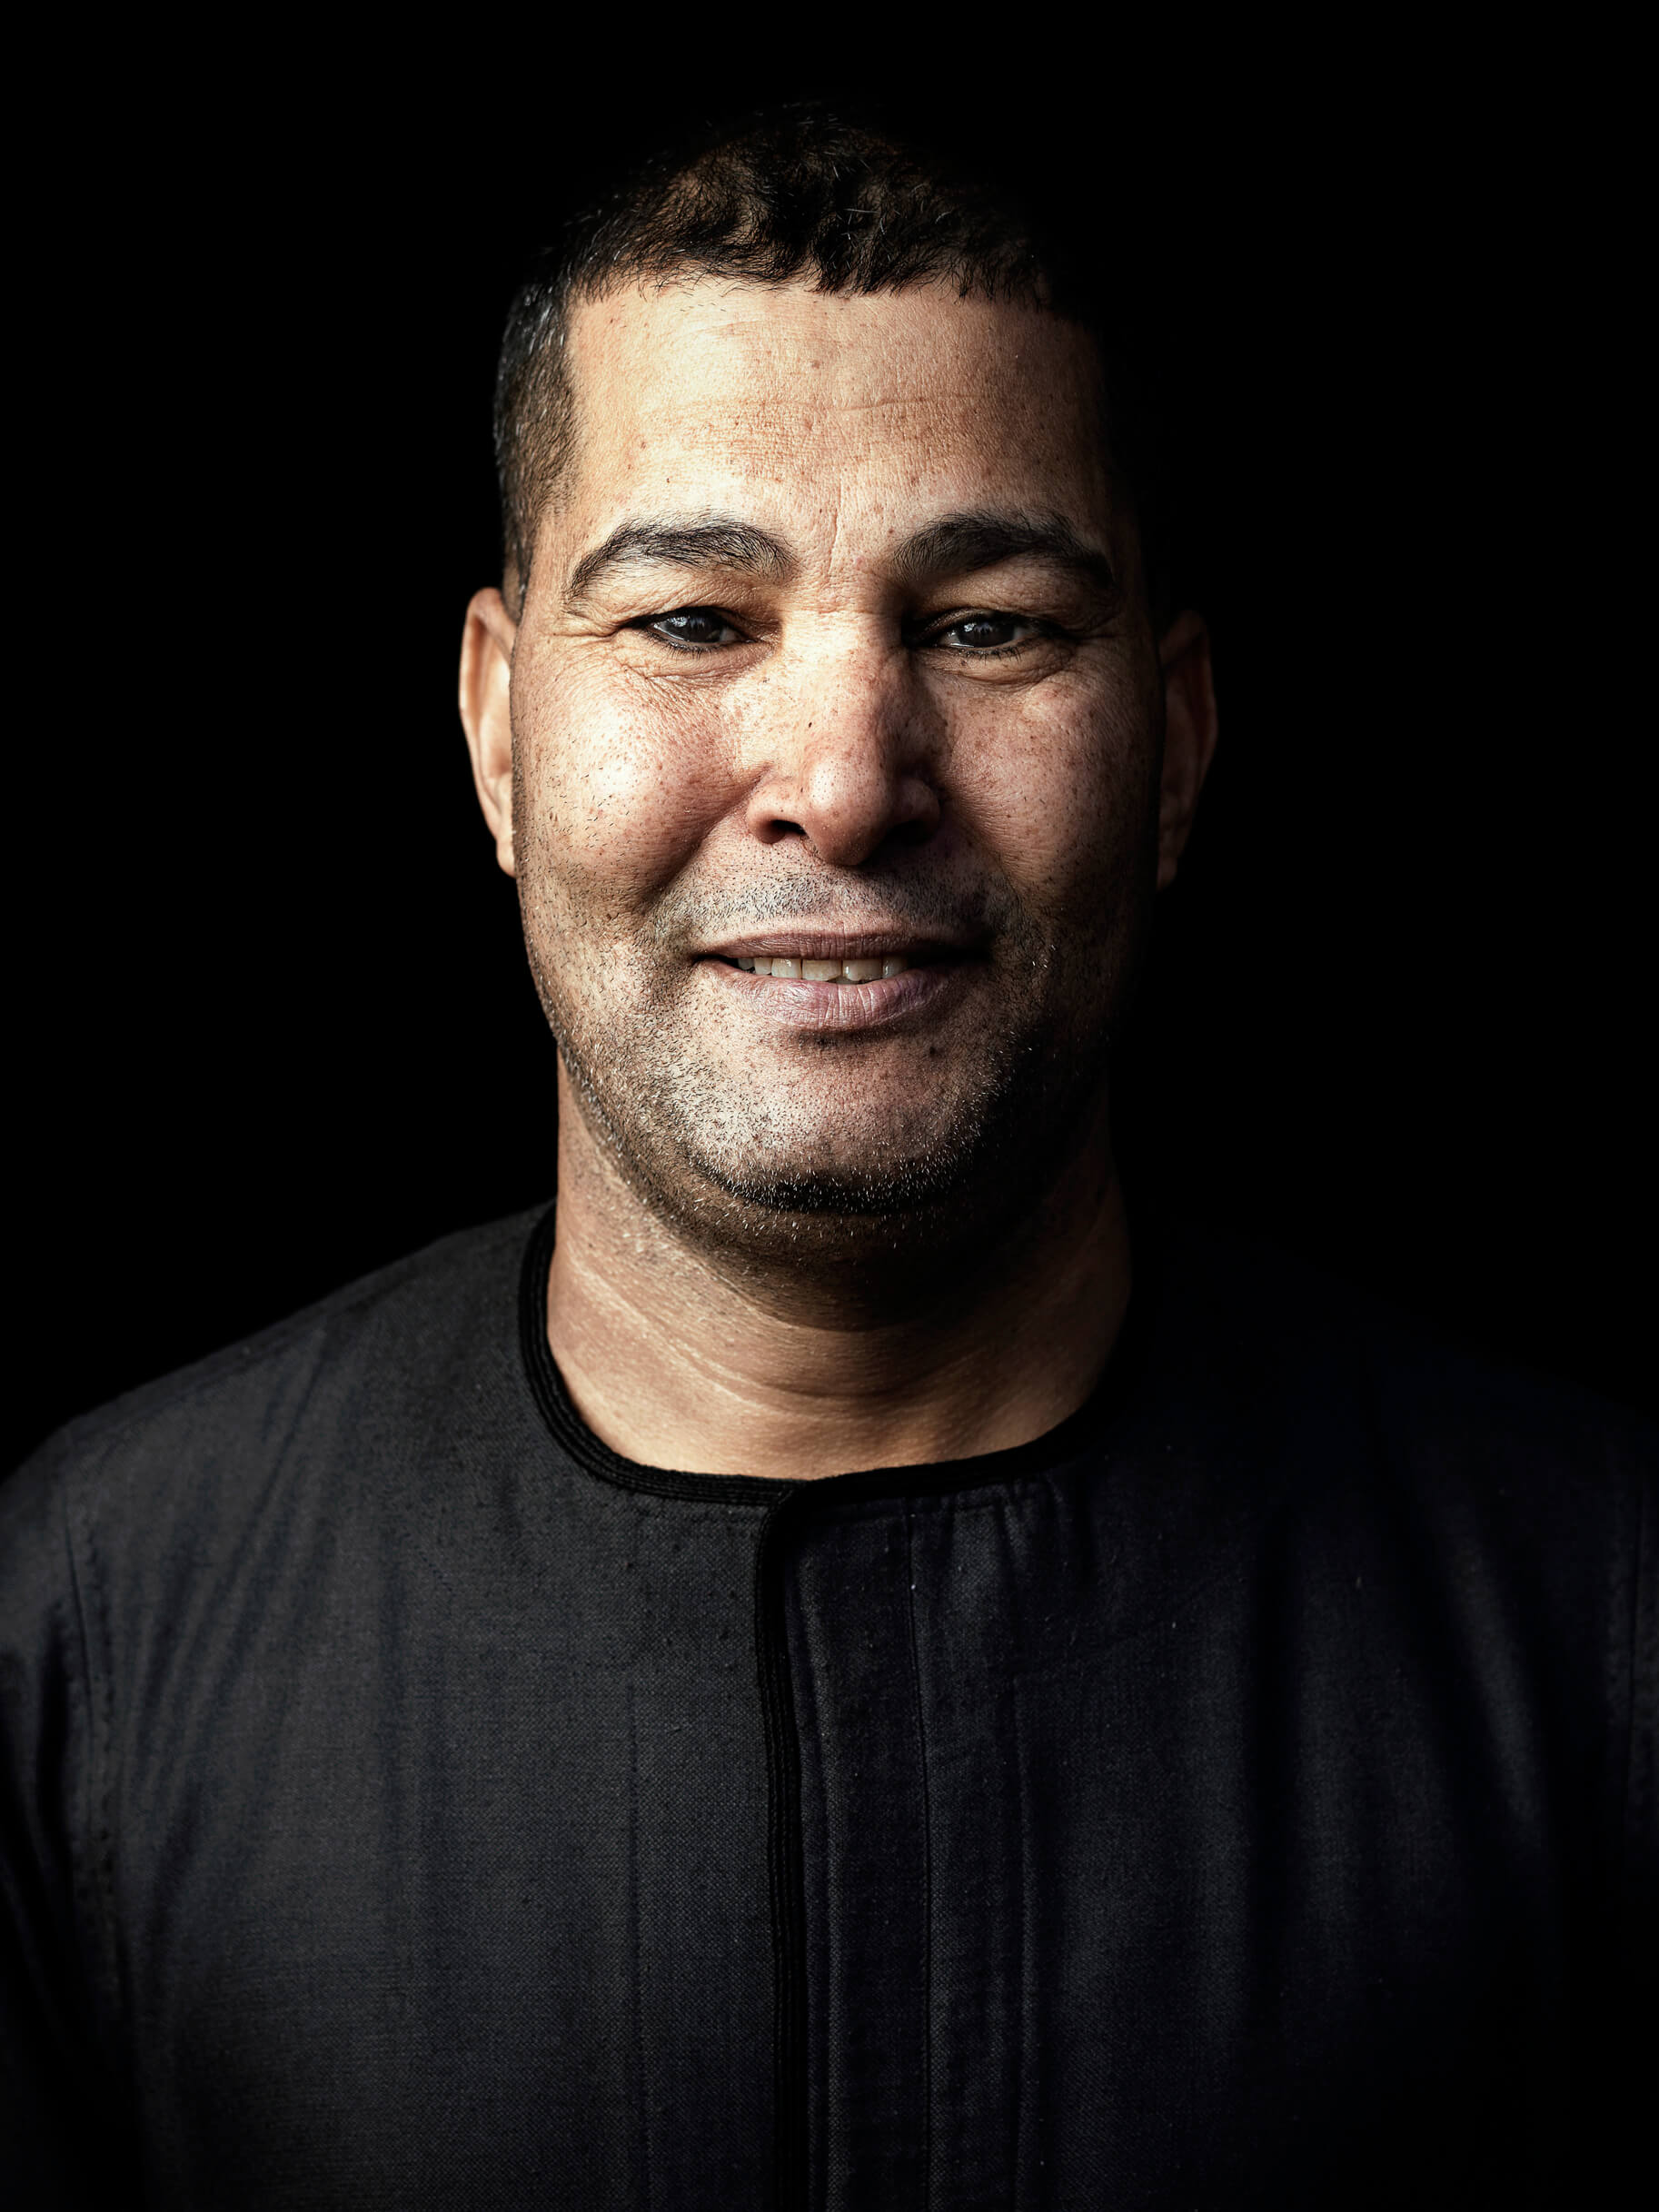 Egypt_People_Portraits_0035